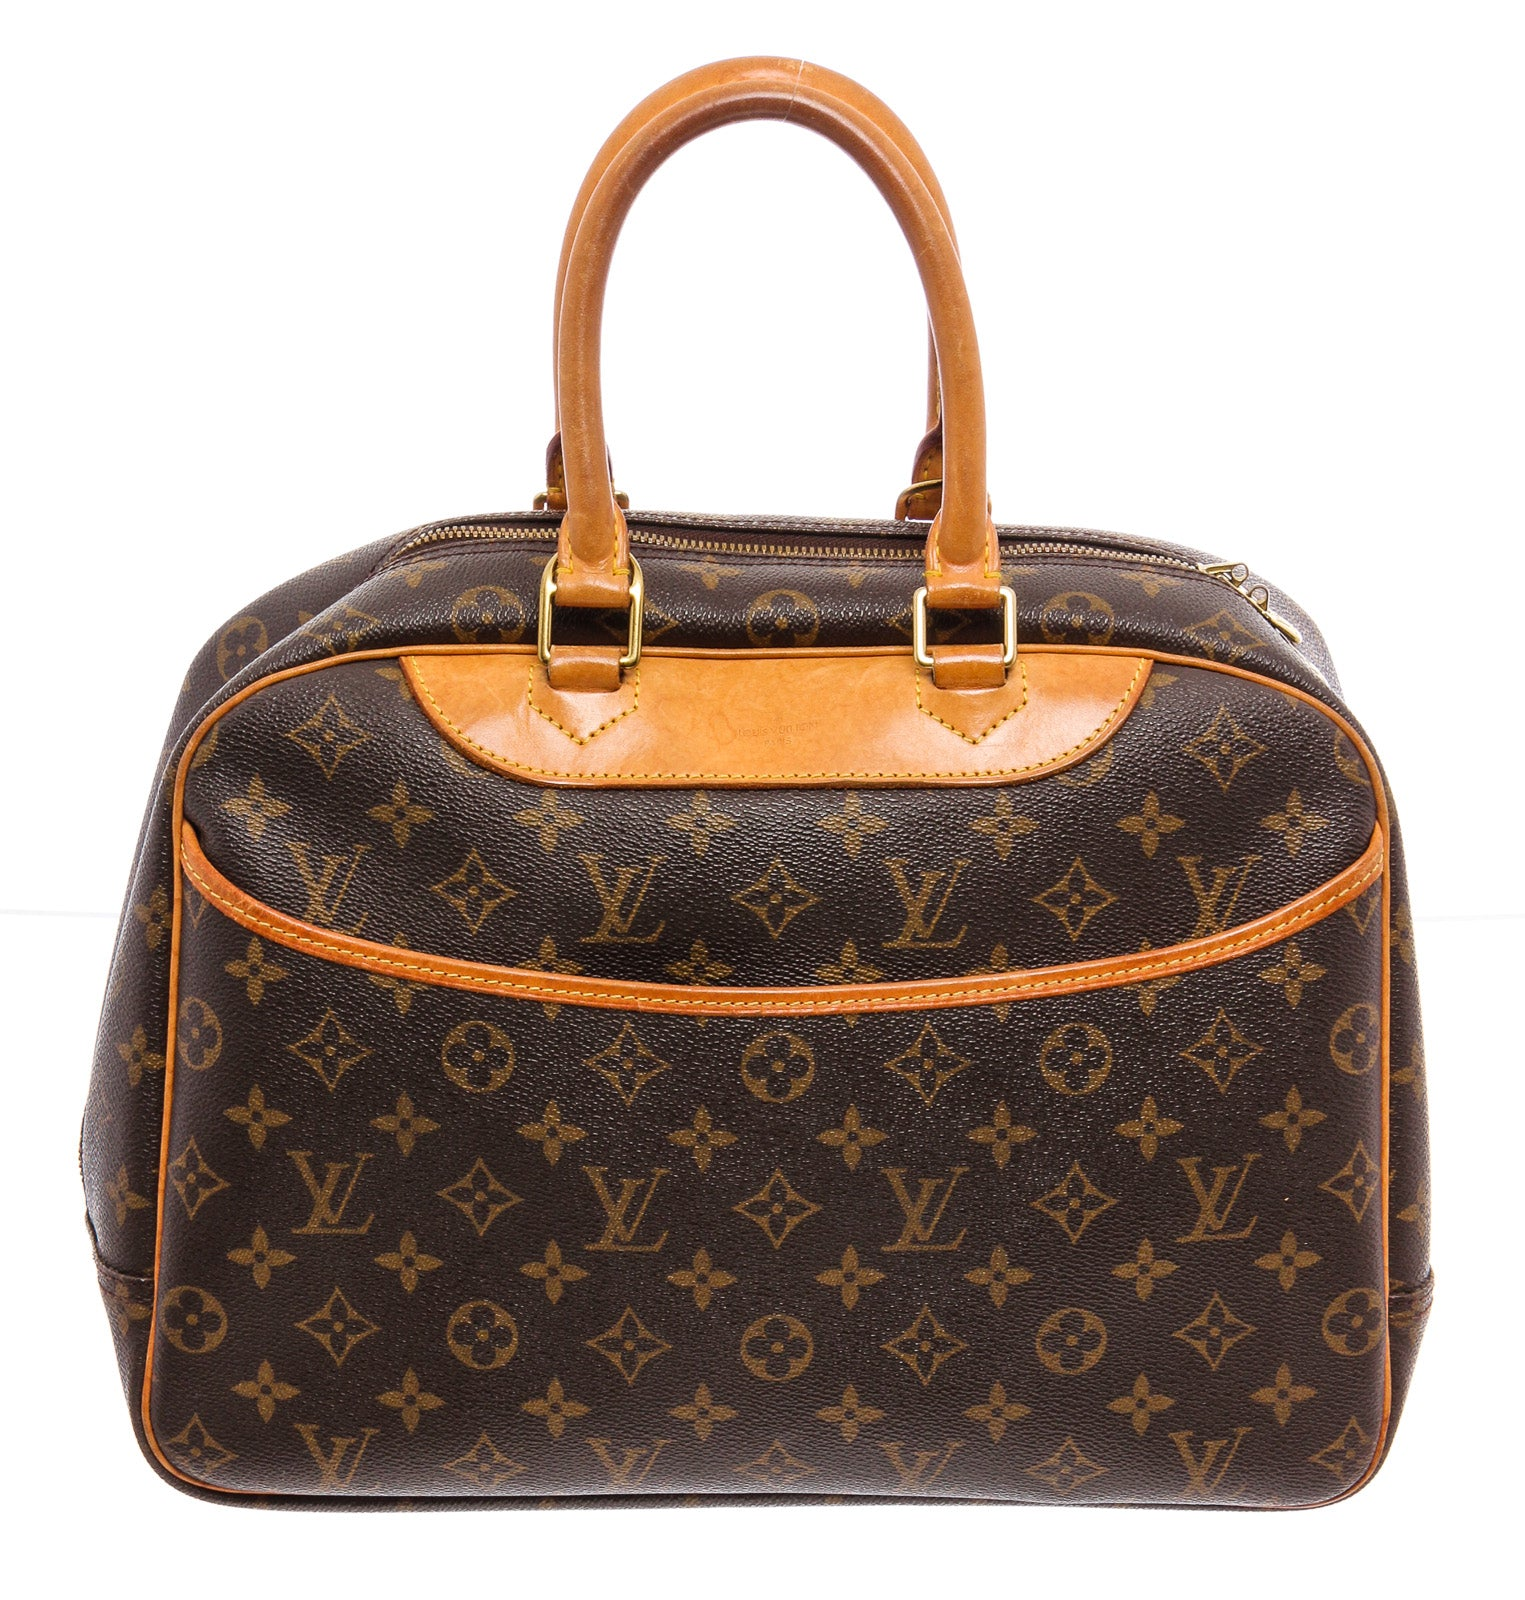 Louis Vuitton Monogram Canvas Deauville Doctor Bag